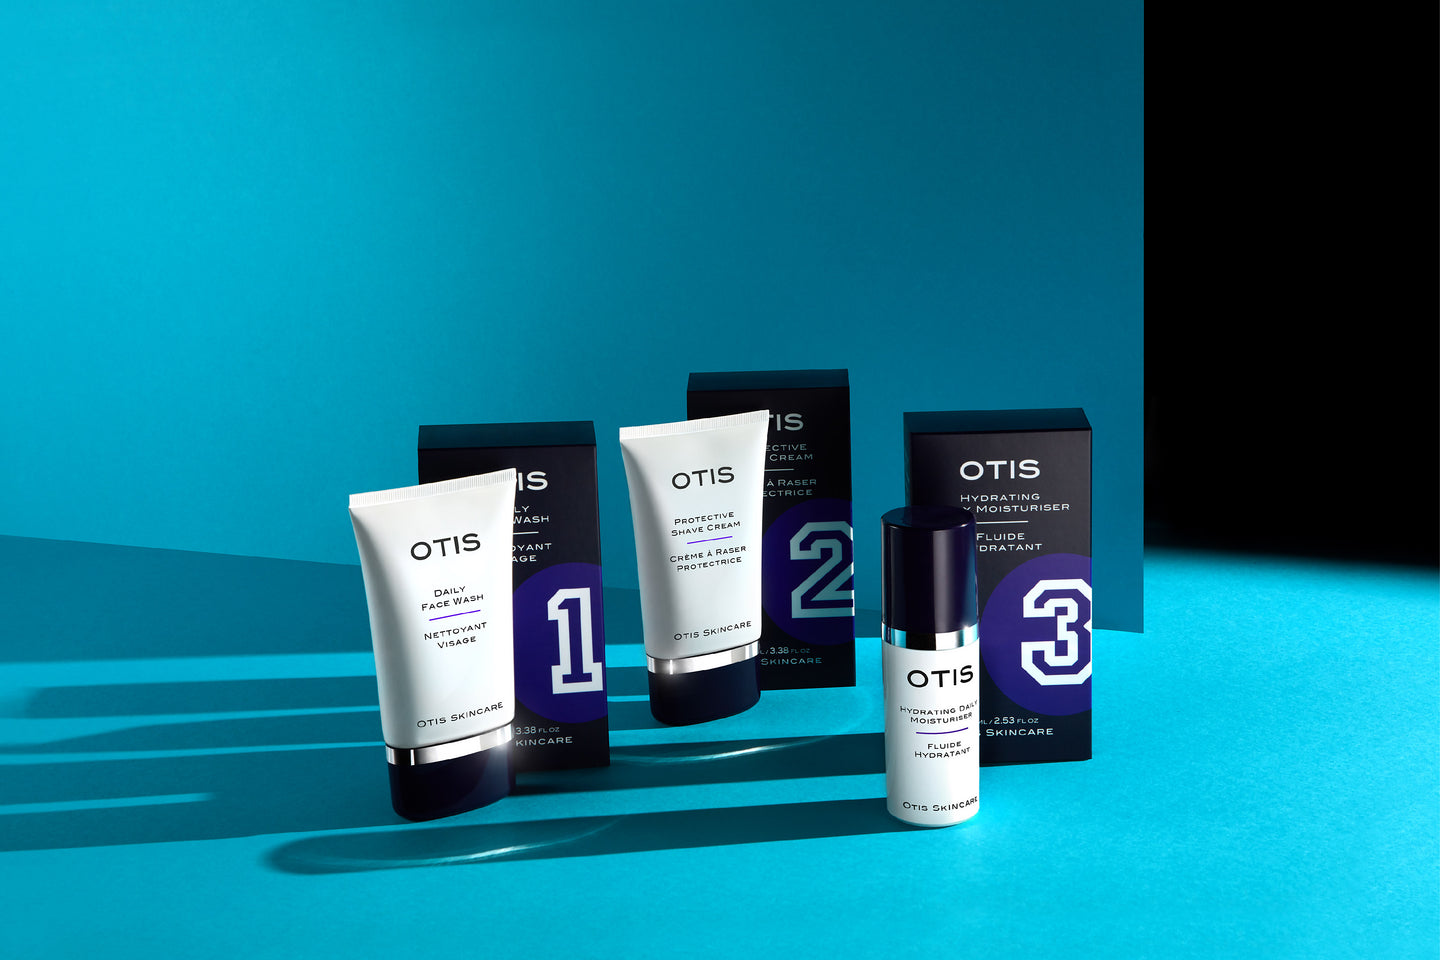 Otis Skincare - Three prestige skincare products for men